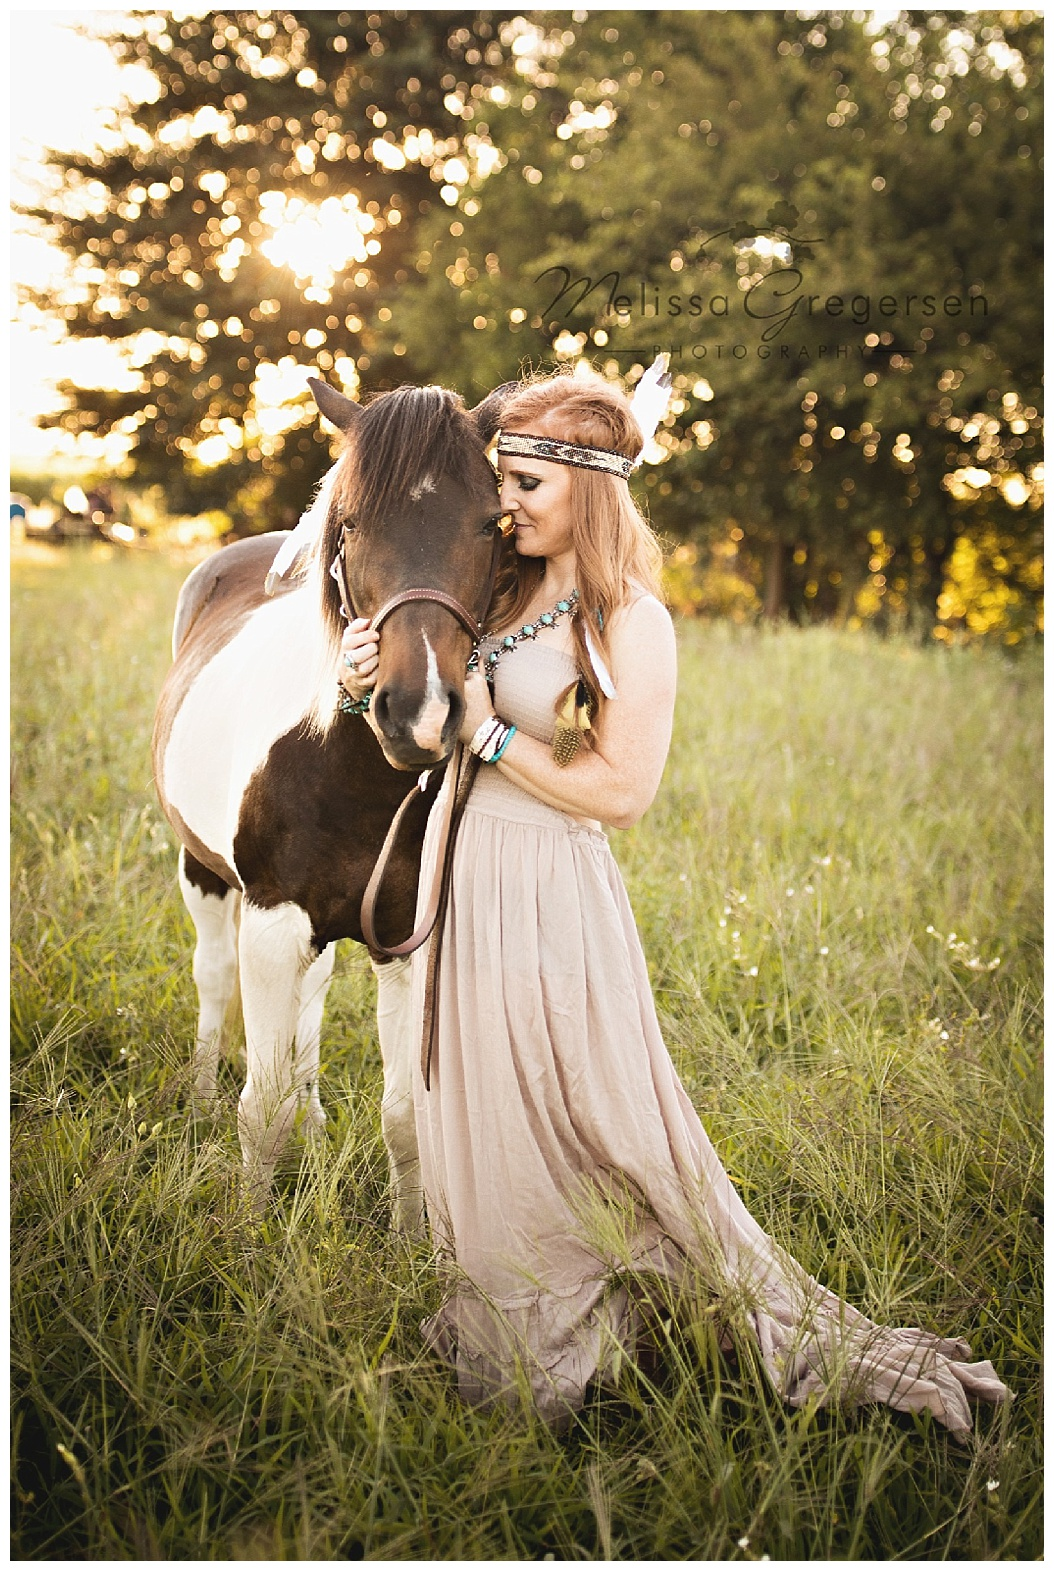 The love of a horse is undeniable in this gorgeous image.